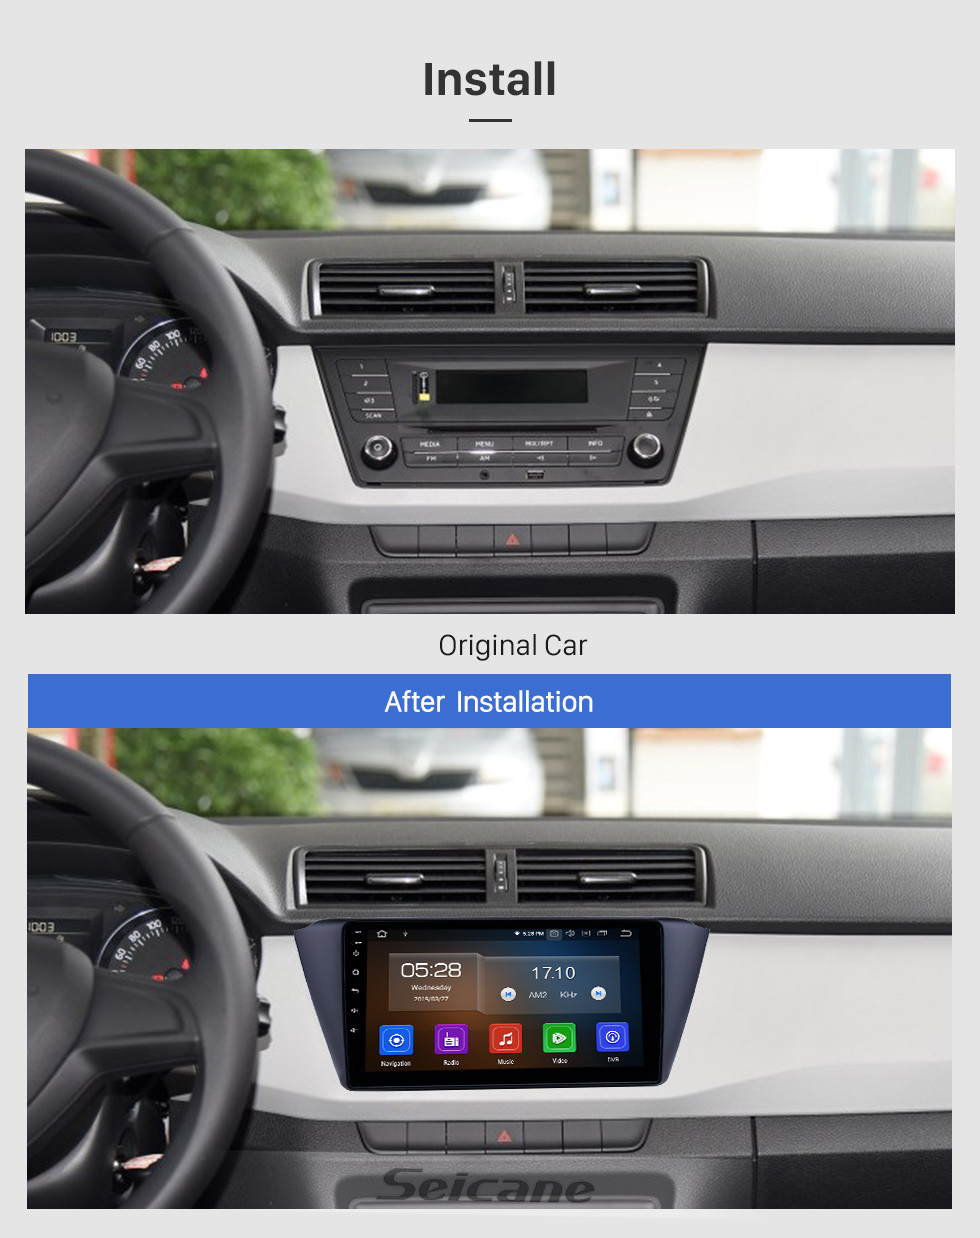 Seicane 9 inch Android 10.0 GPS Navigation Radio for 2015-2018 Skoda New Fabia with HD Touchscreen Bluetooth USB WIFI AUX support Carplay SWC TPMS